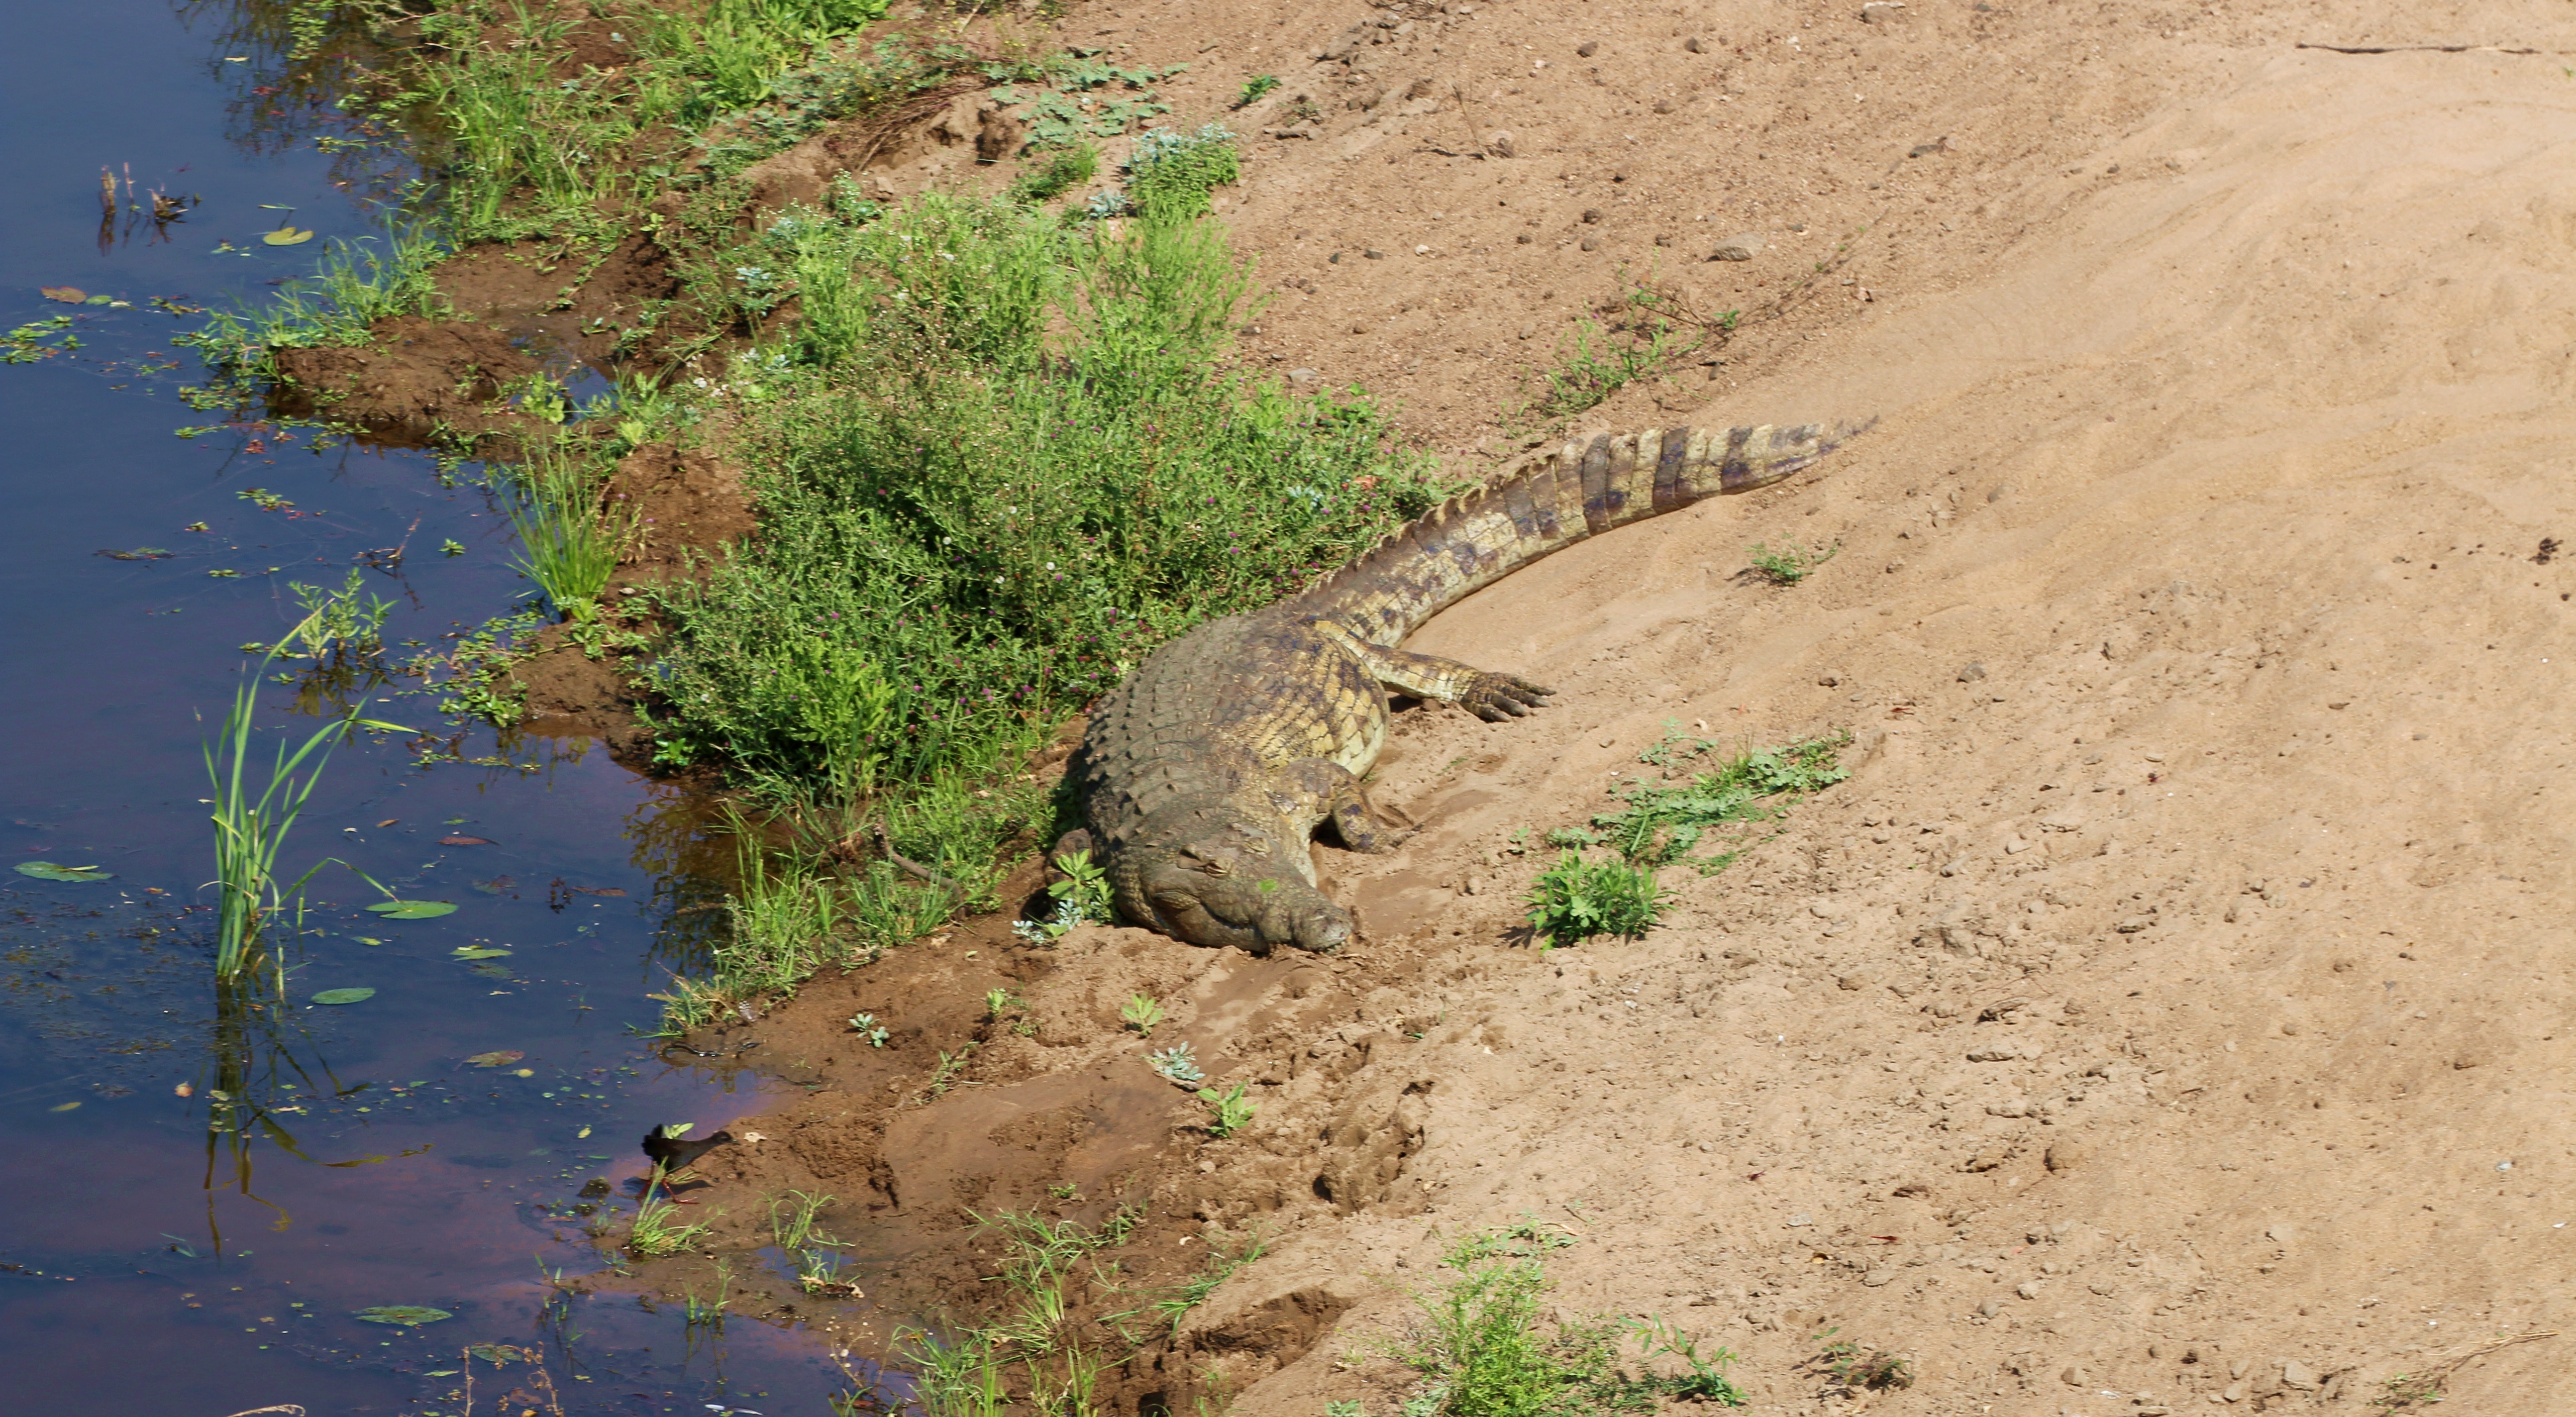 Kruger Crocodile by water